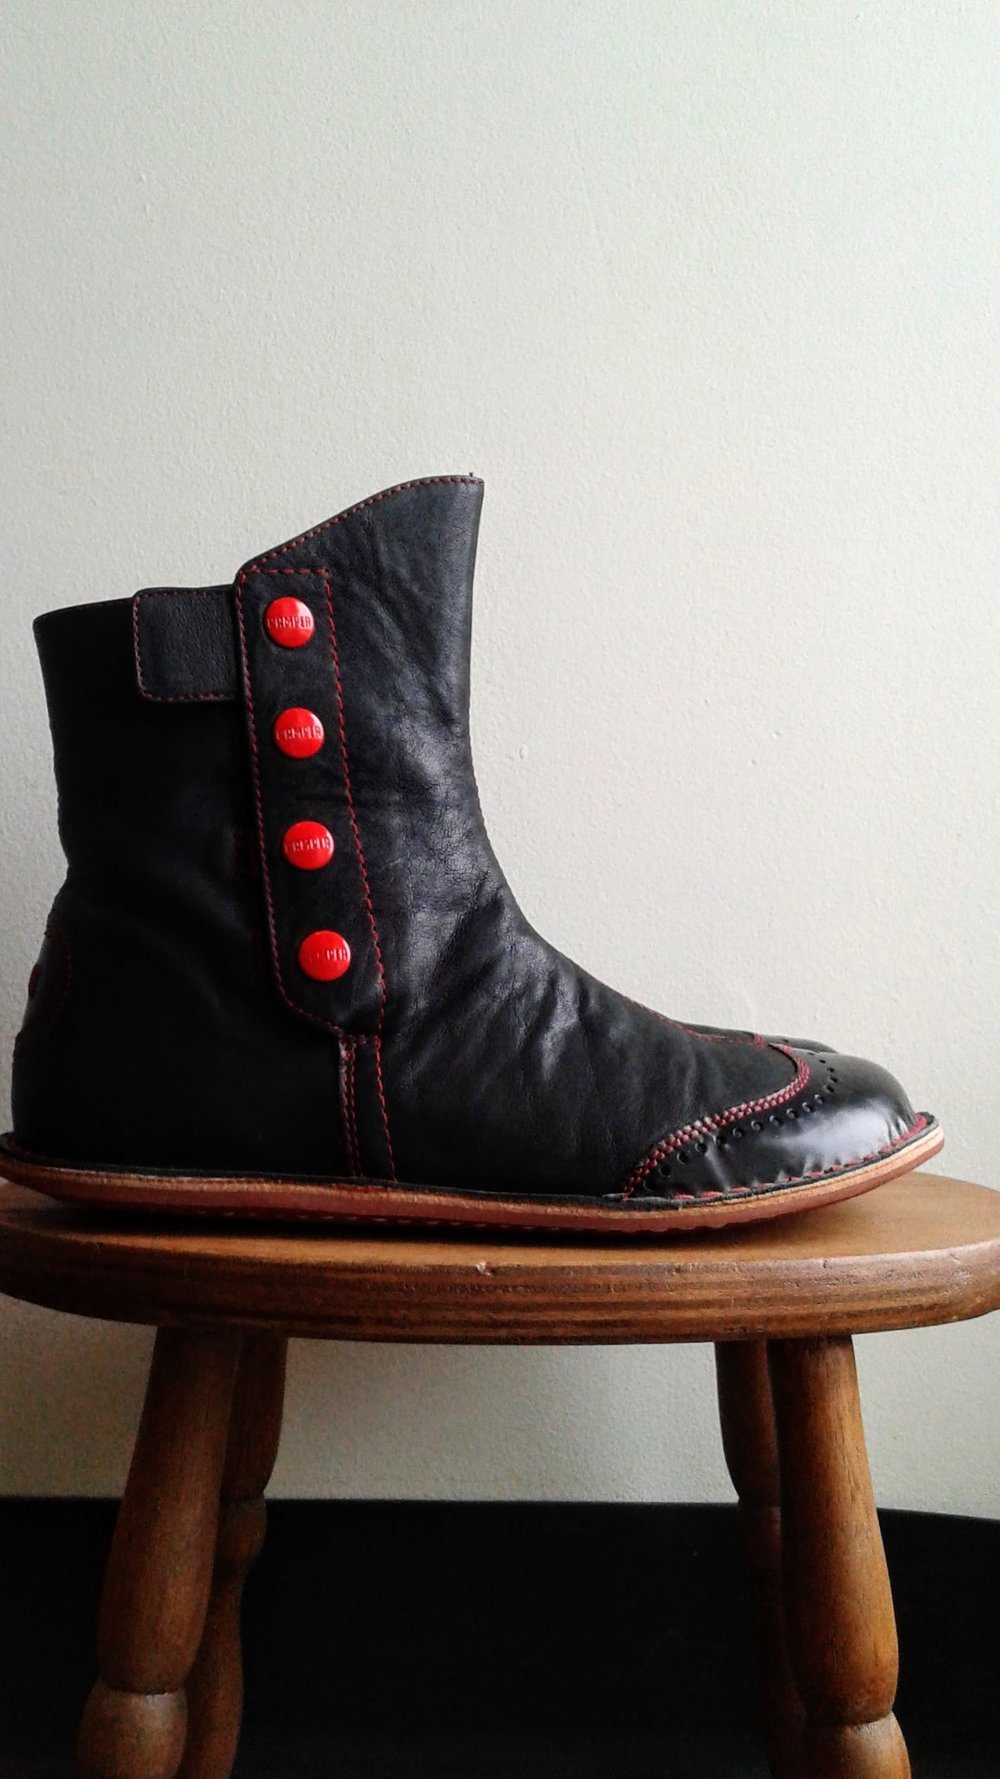 Campers boots; S8.5, $165